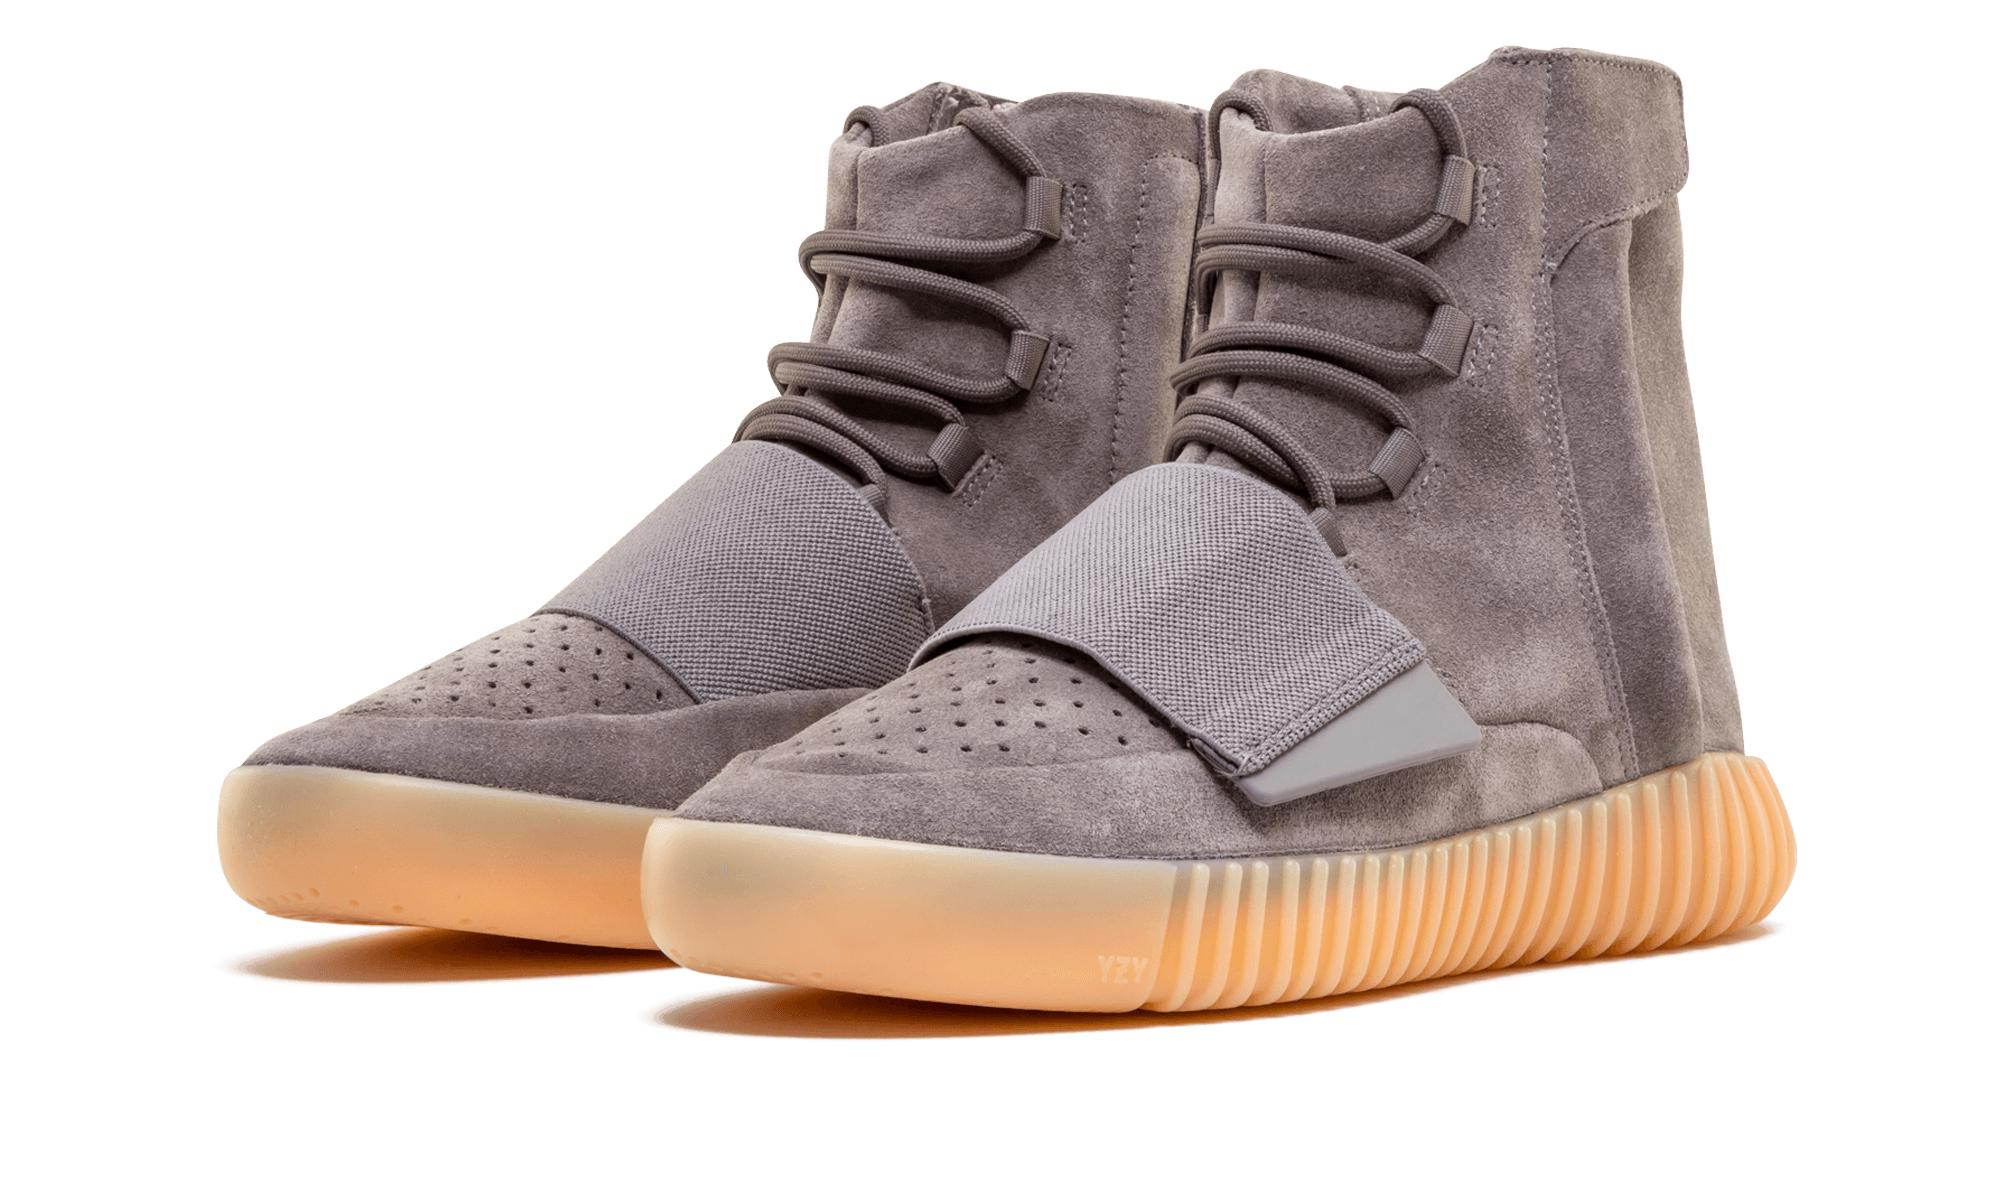 f82003a5432 Adidas - Multicolor Yeezy Boost 750 - Lyst. View fullscreen